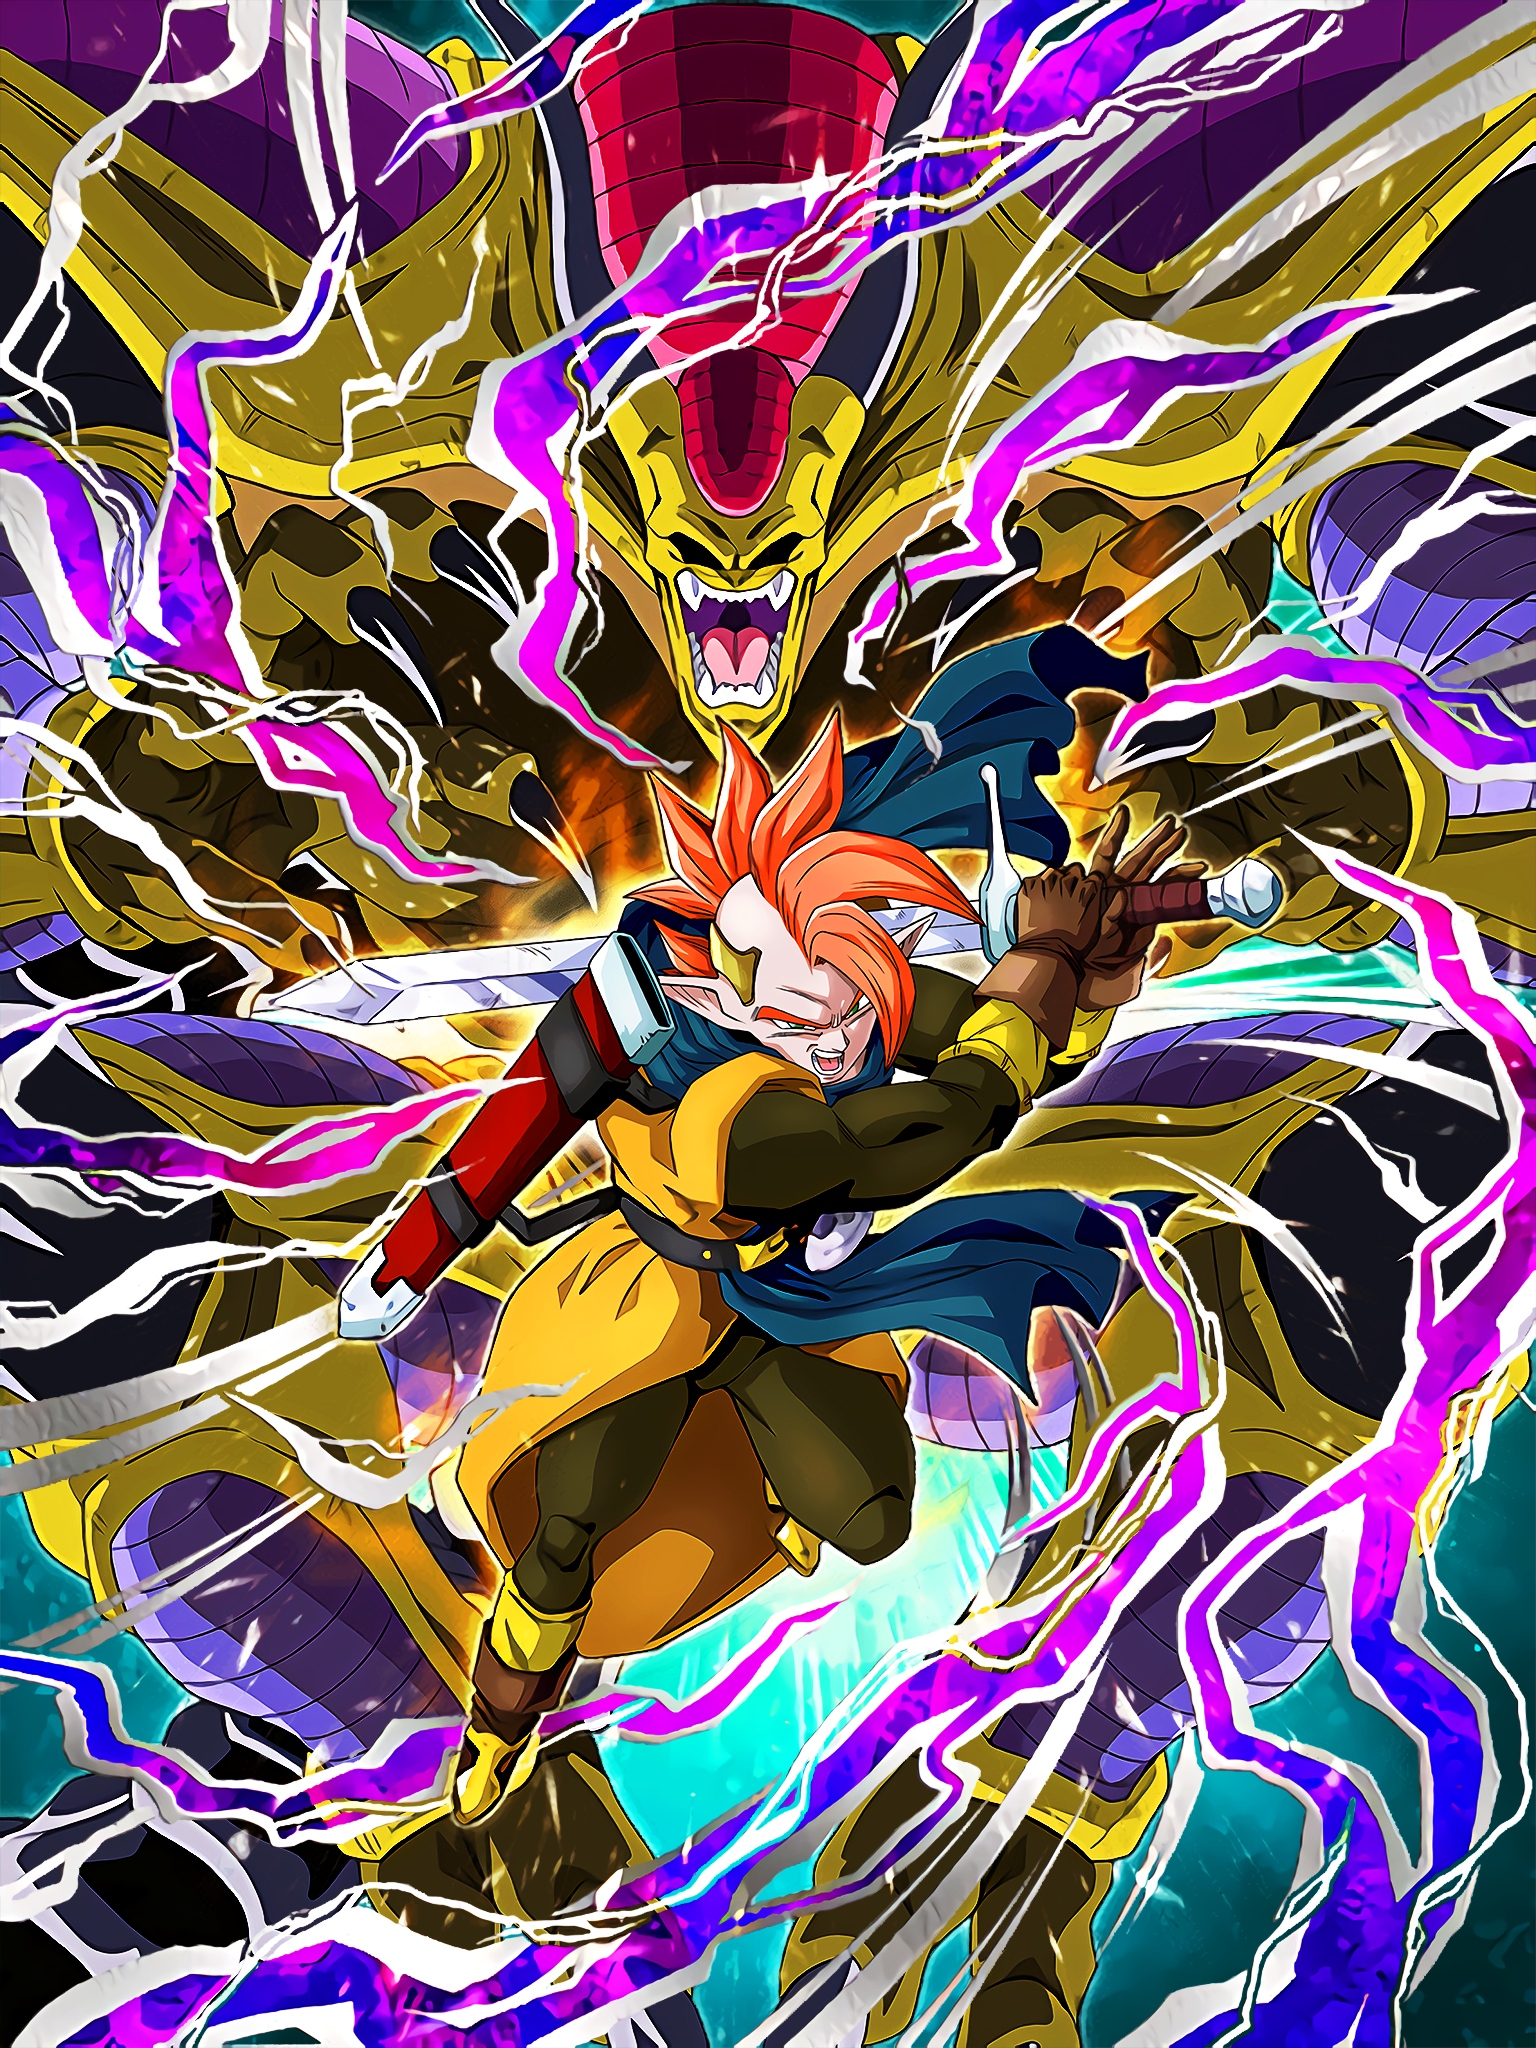 Sleeping Majin Phantom Tapion Hirudegarn Art (Dragon Ball Z Dokkan Battle)